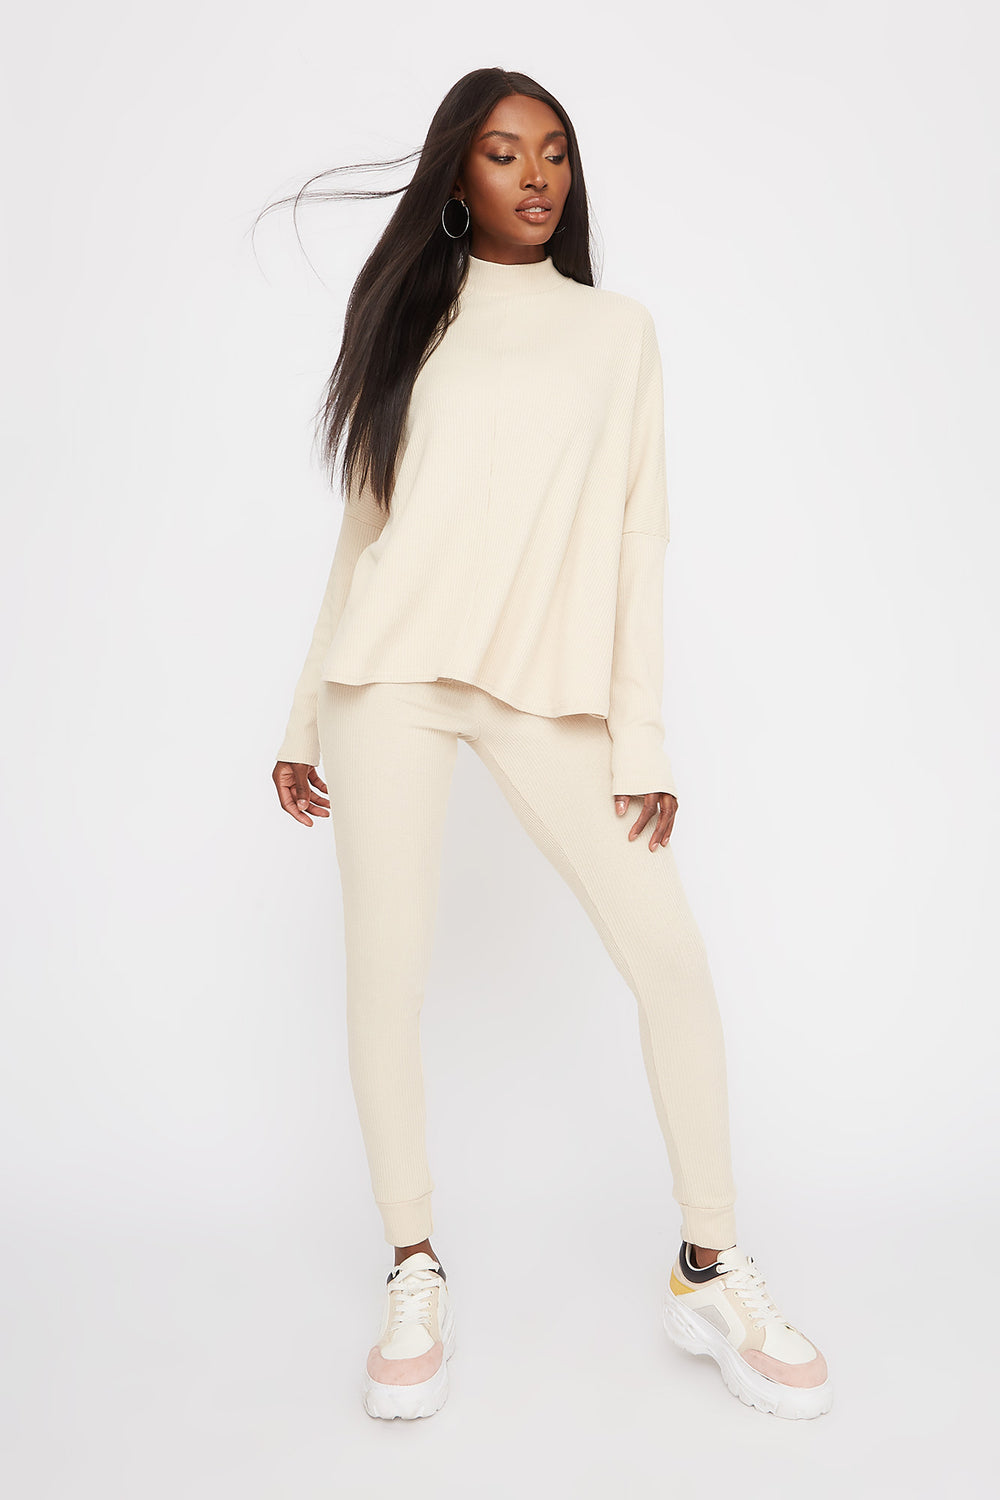 Ribbed Mock Neck Dolman Long Sleeve Oatmeal